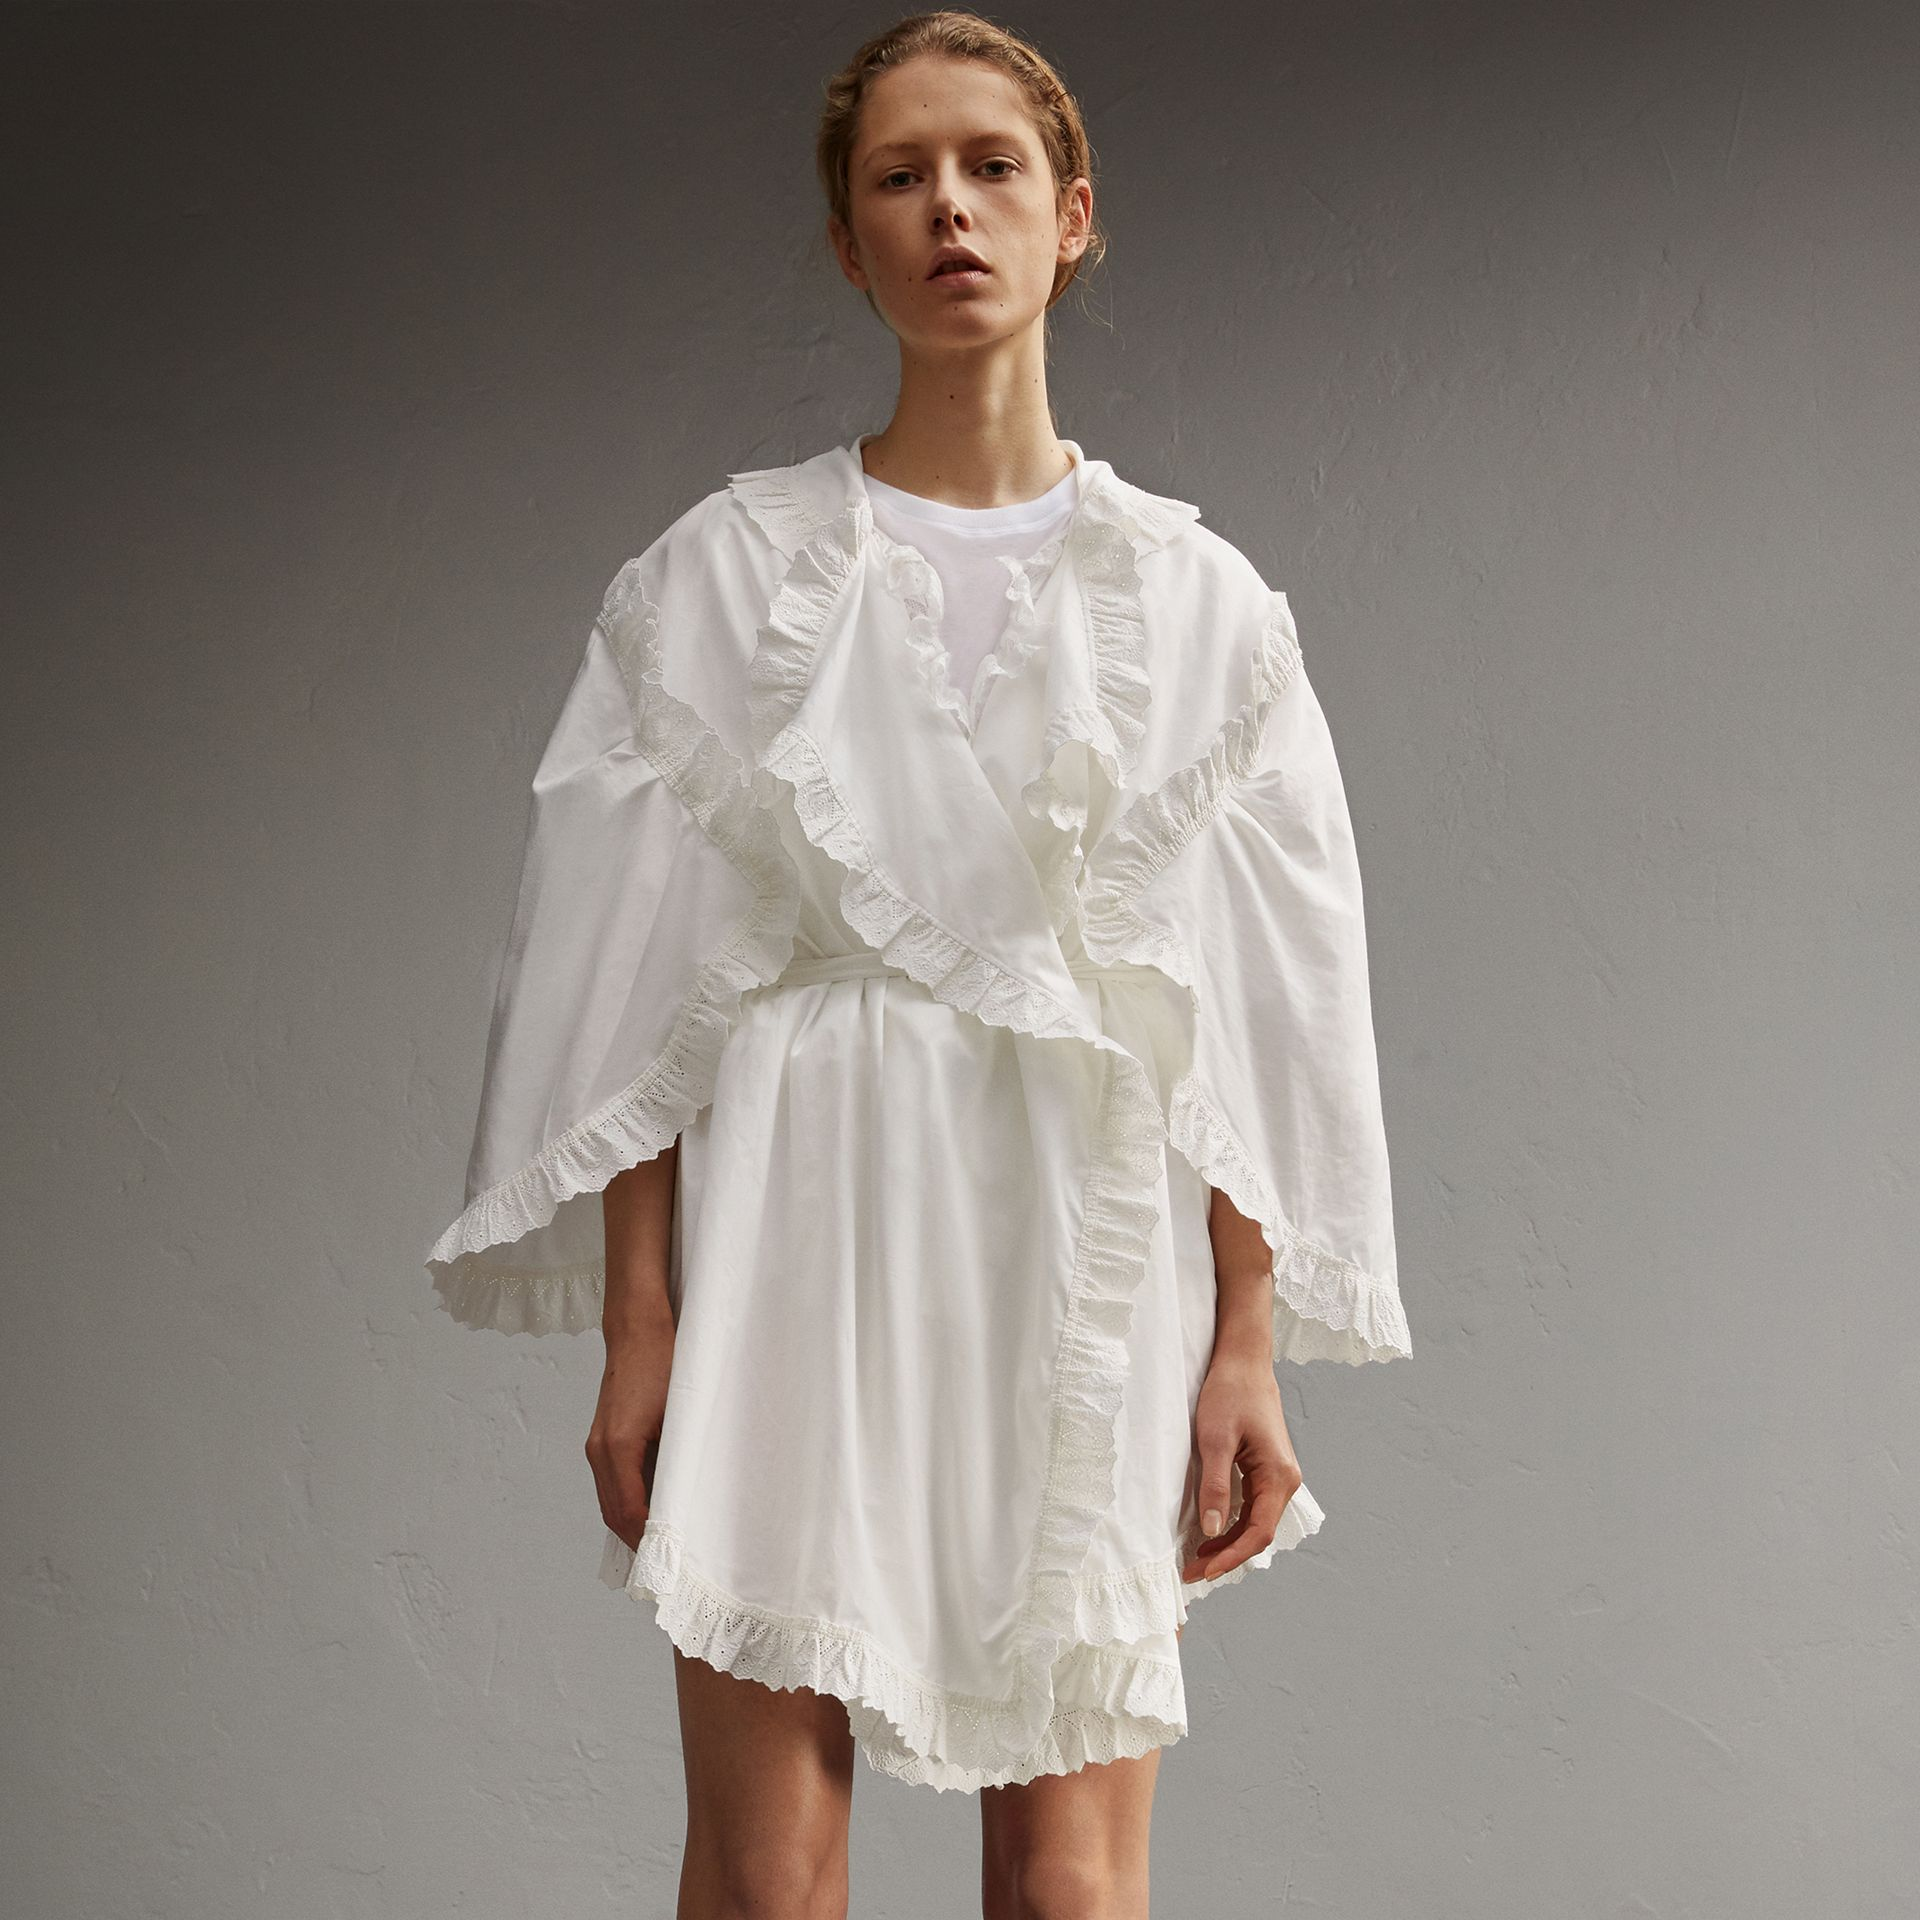 Broderie Anglaise Ruffle Cotton Dress in White - Women | Burberry - gallery image 1